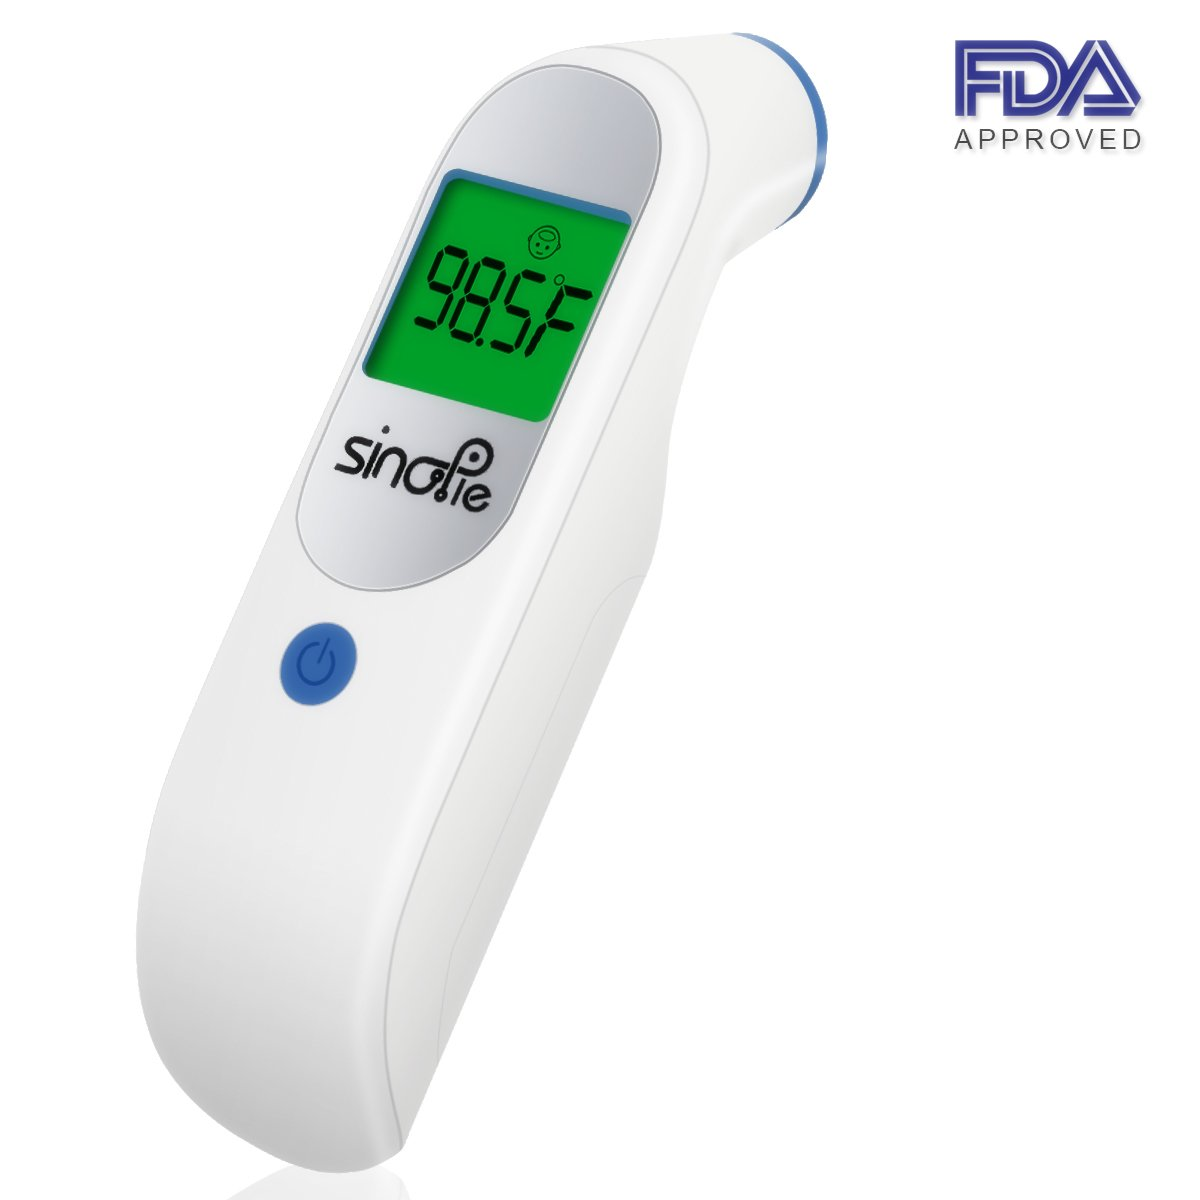 Digital Forehead Thermometer, Infrared Medical Thermometer with FDA Test and Clinical Accuracy, Non Contact Body Thermometer for Baby, Kids, Infant and Adults (White)